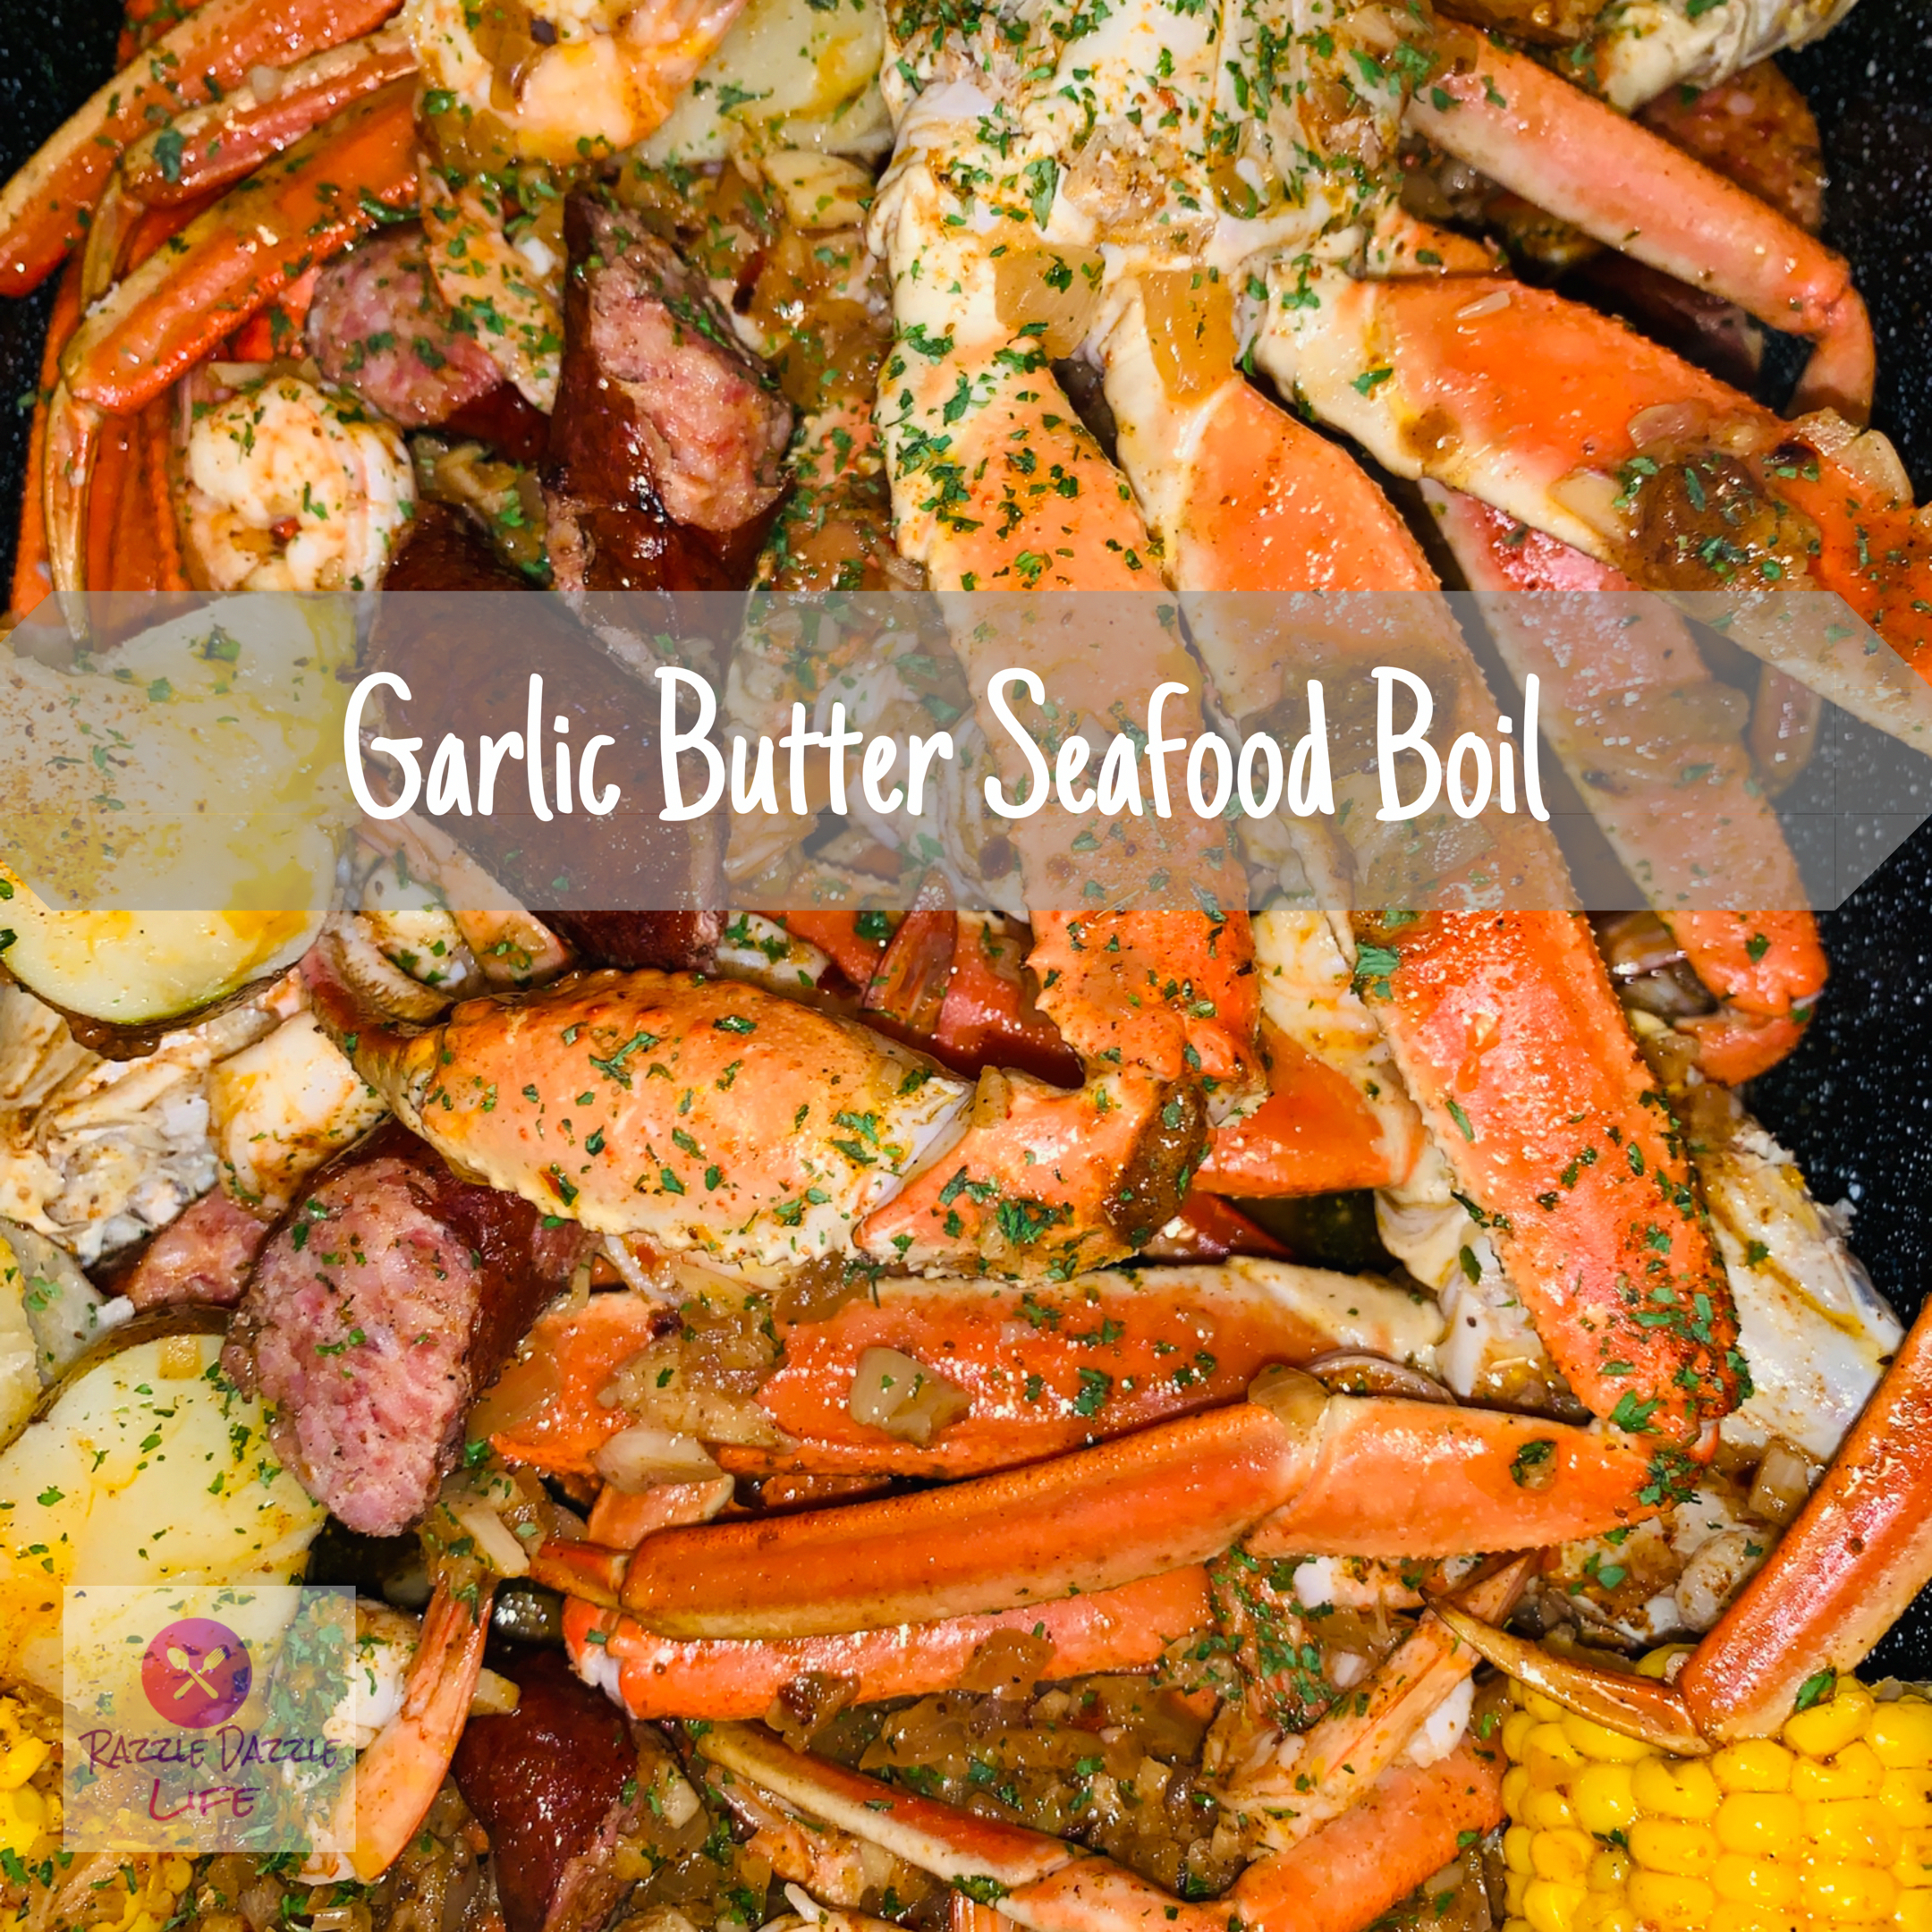 Garlic Butter Seafood Boil Razzle Dazzle Life Recipe Seafood Boil Recipes Seafood Recipes Crab Seafood Dinner